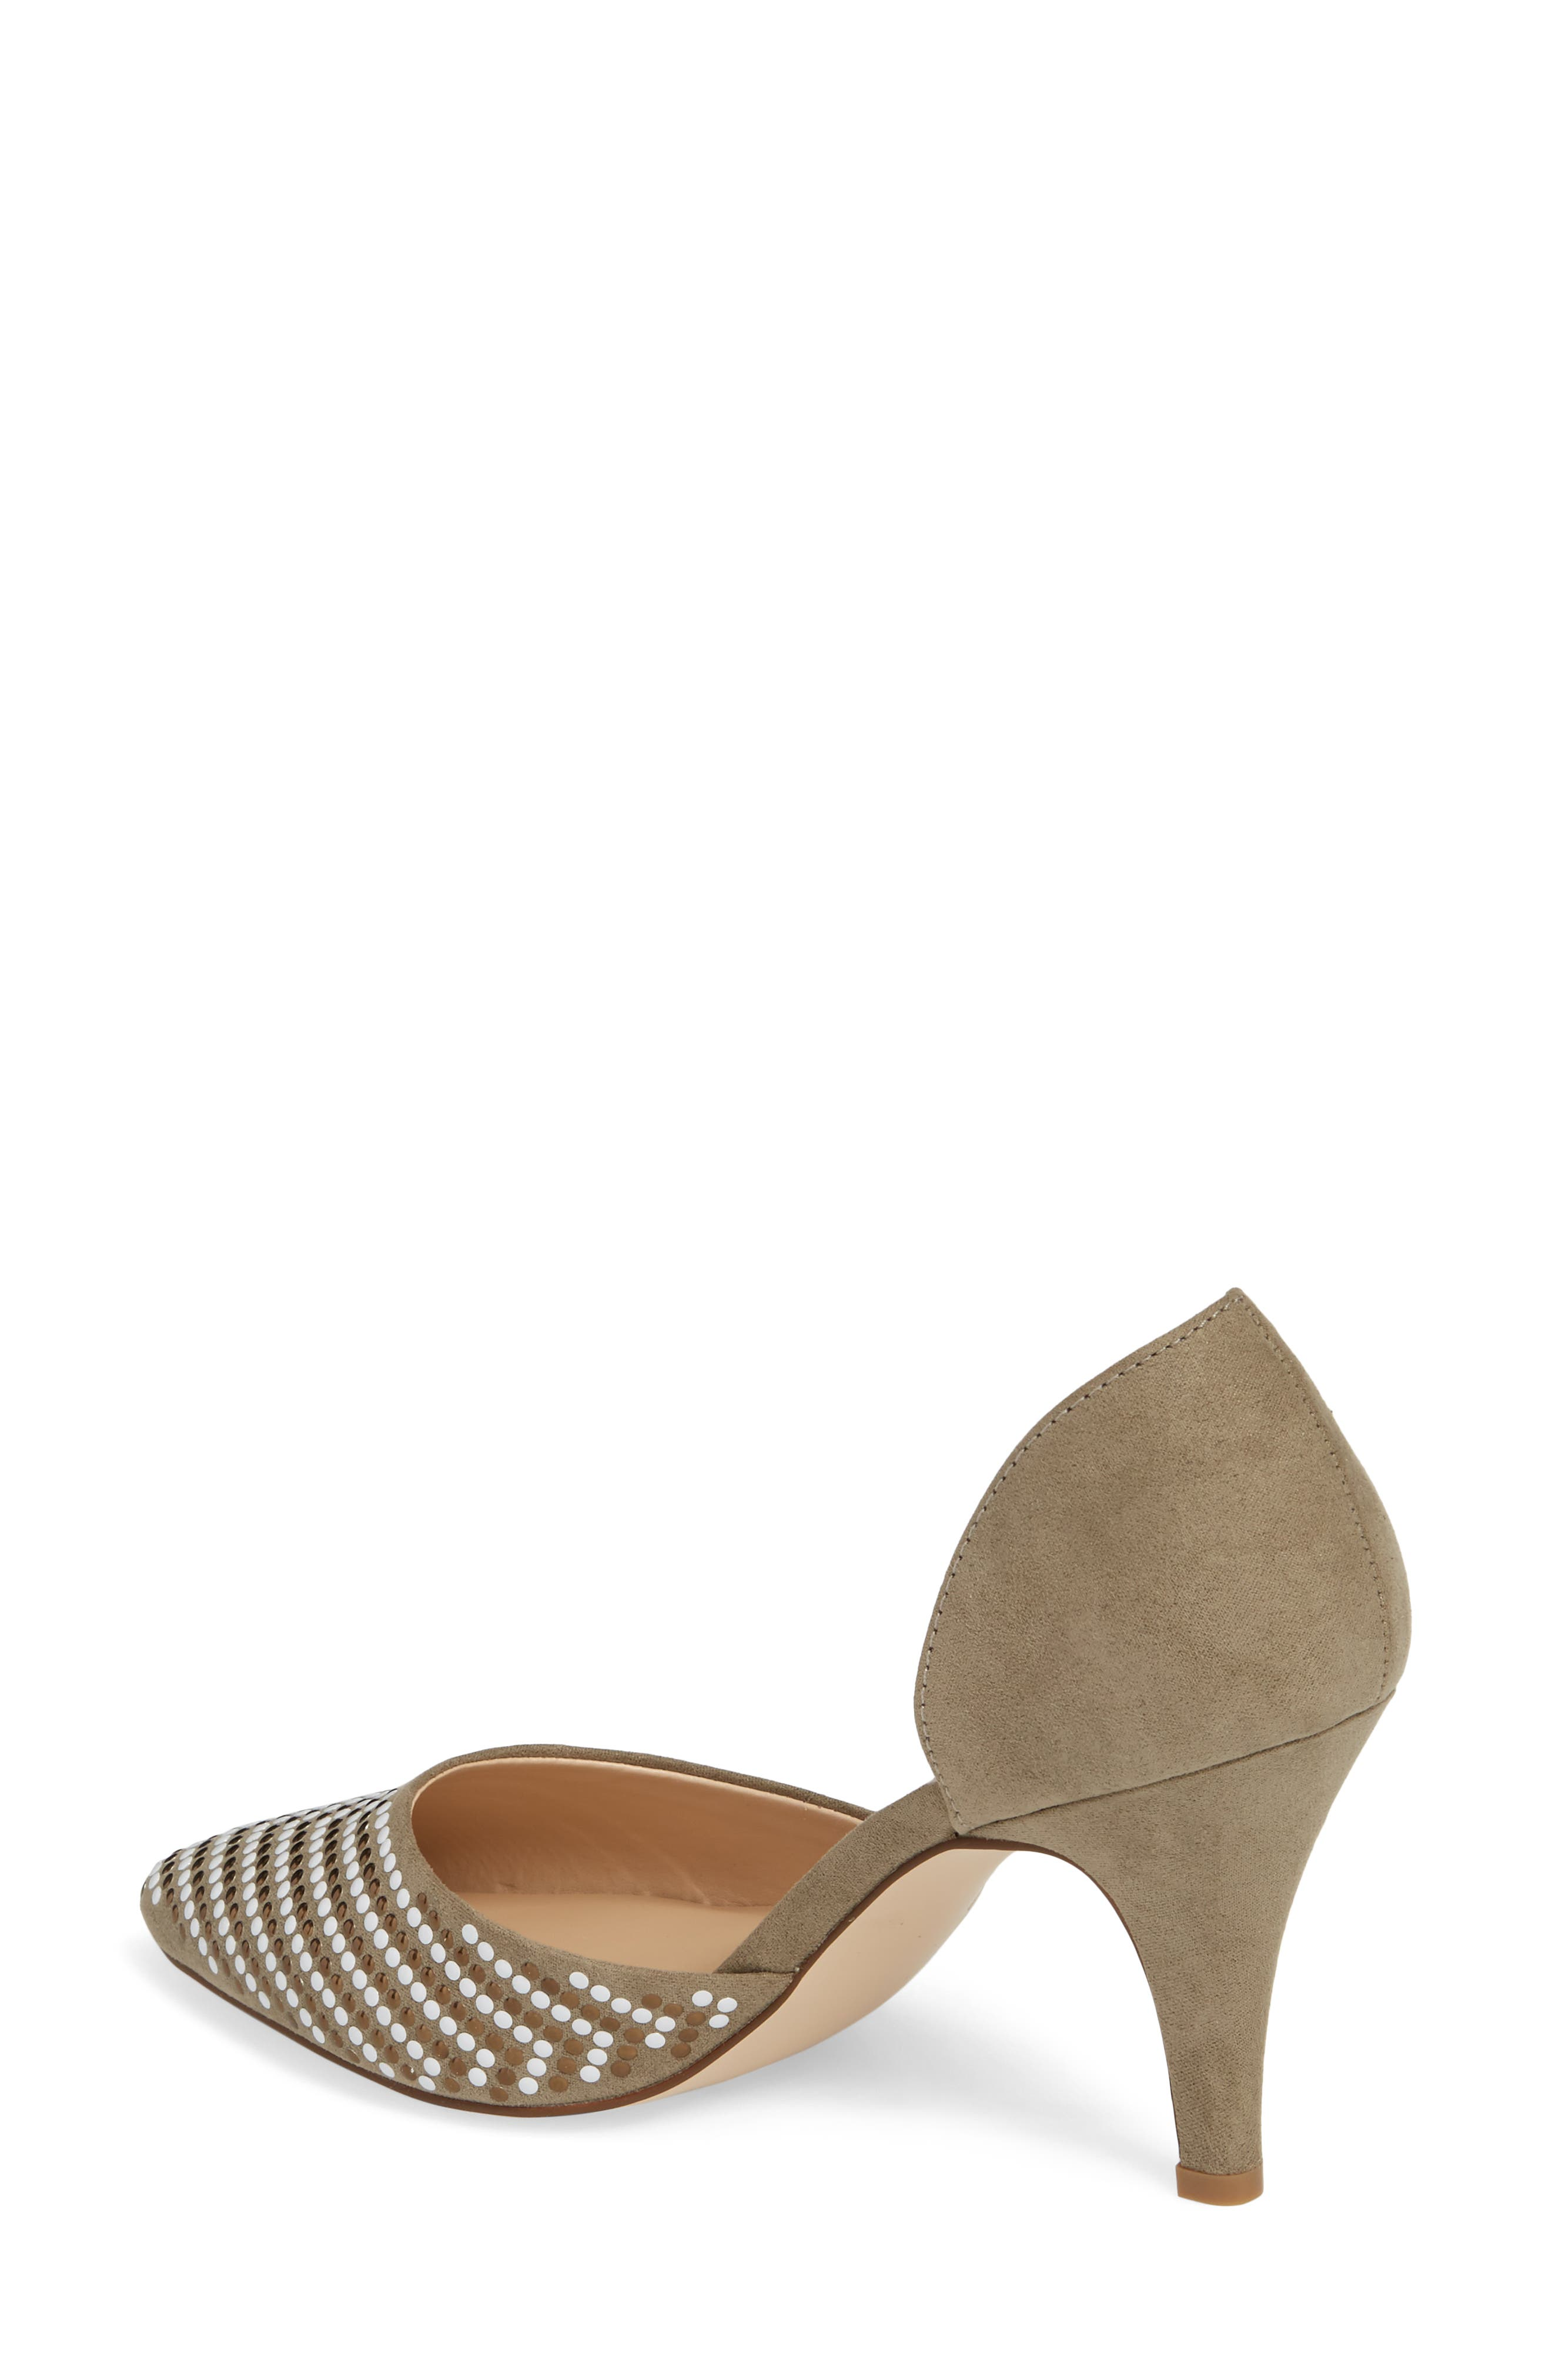 Mimosa Studded d'Orsay Pump,                             Alternate thumbnail 2, color,                             OLIVE SUEDE